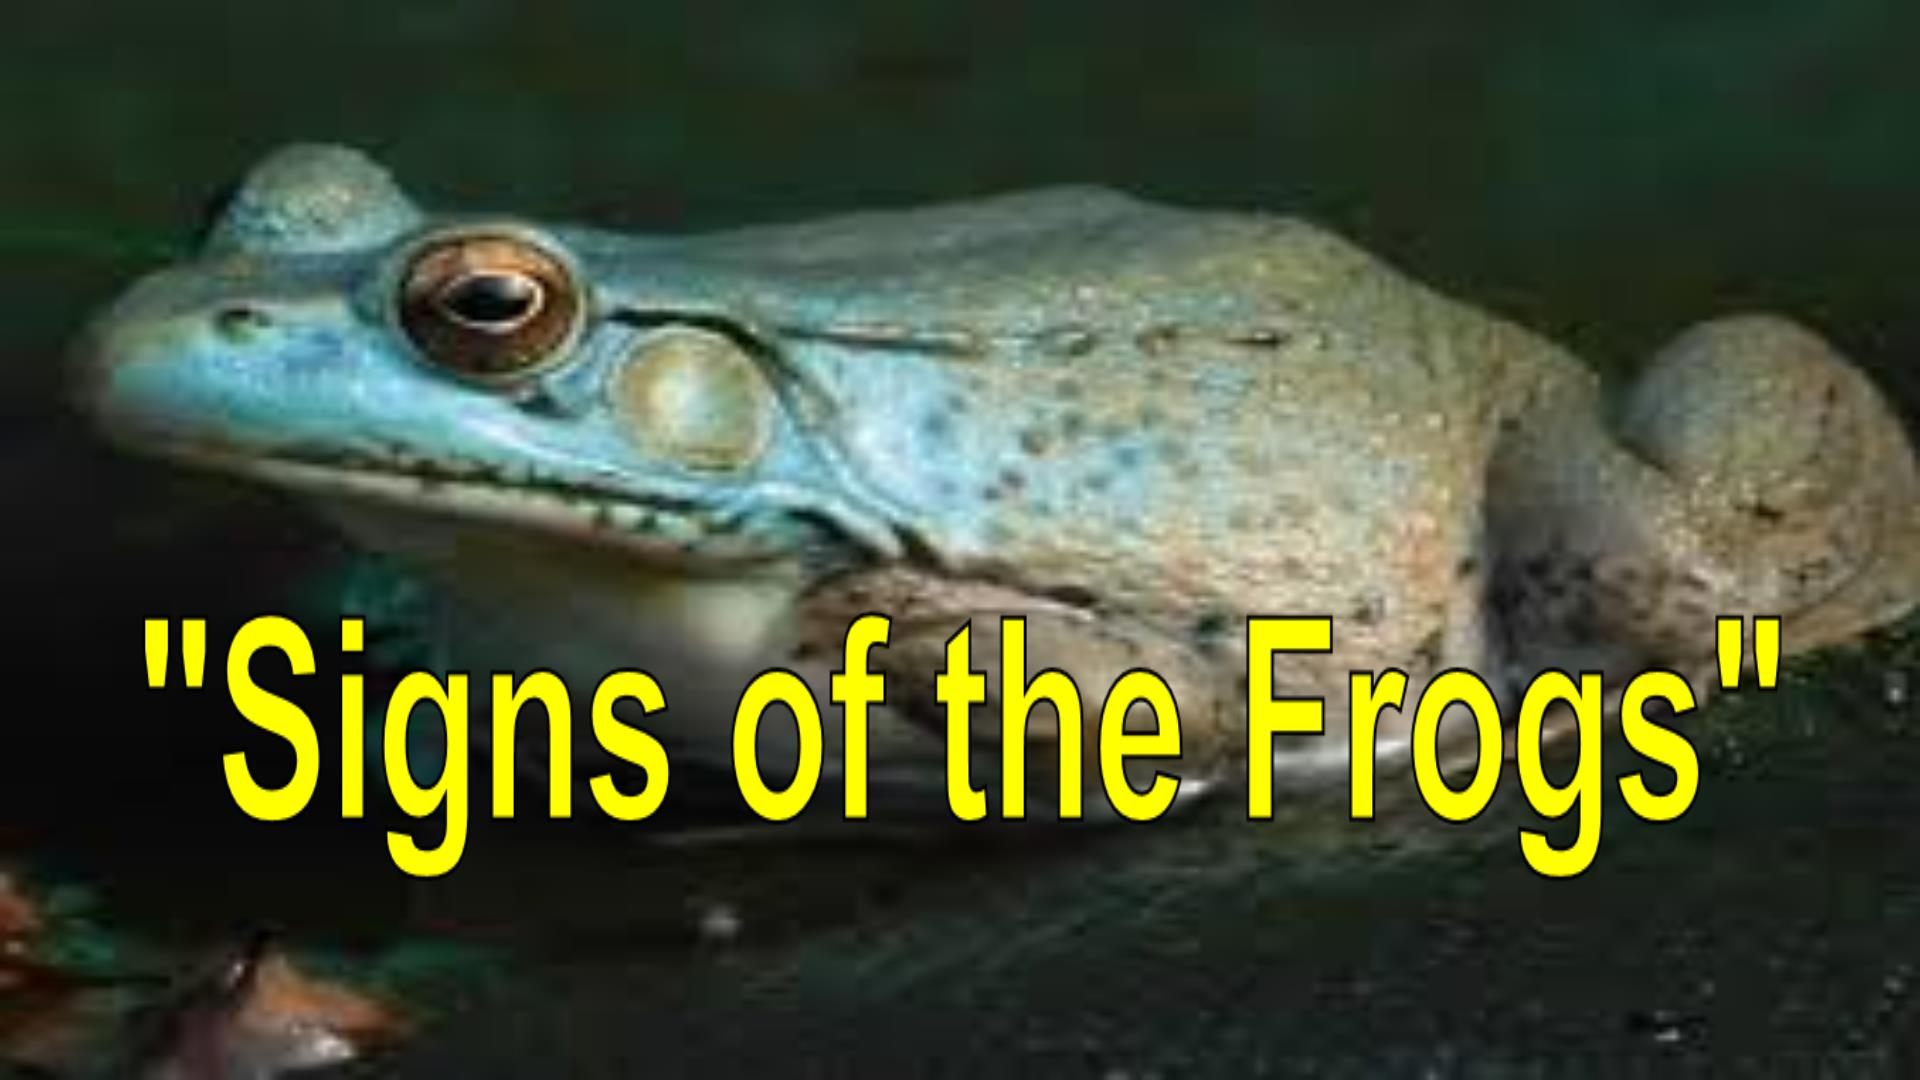 Signs of the Frogs